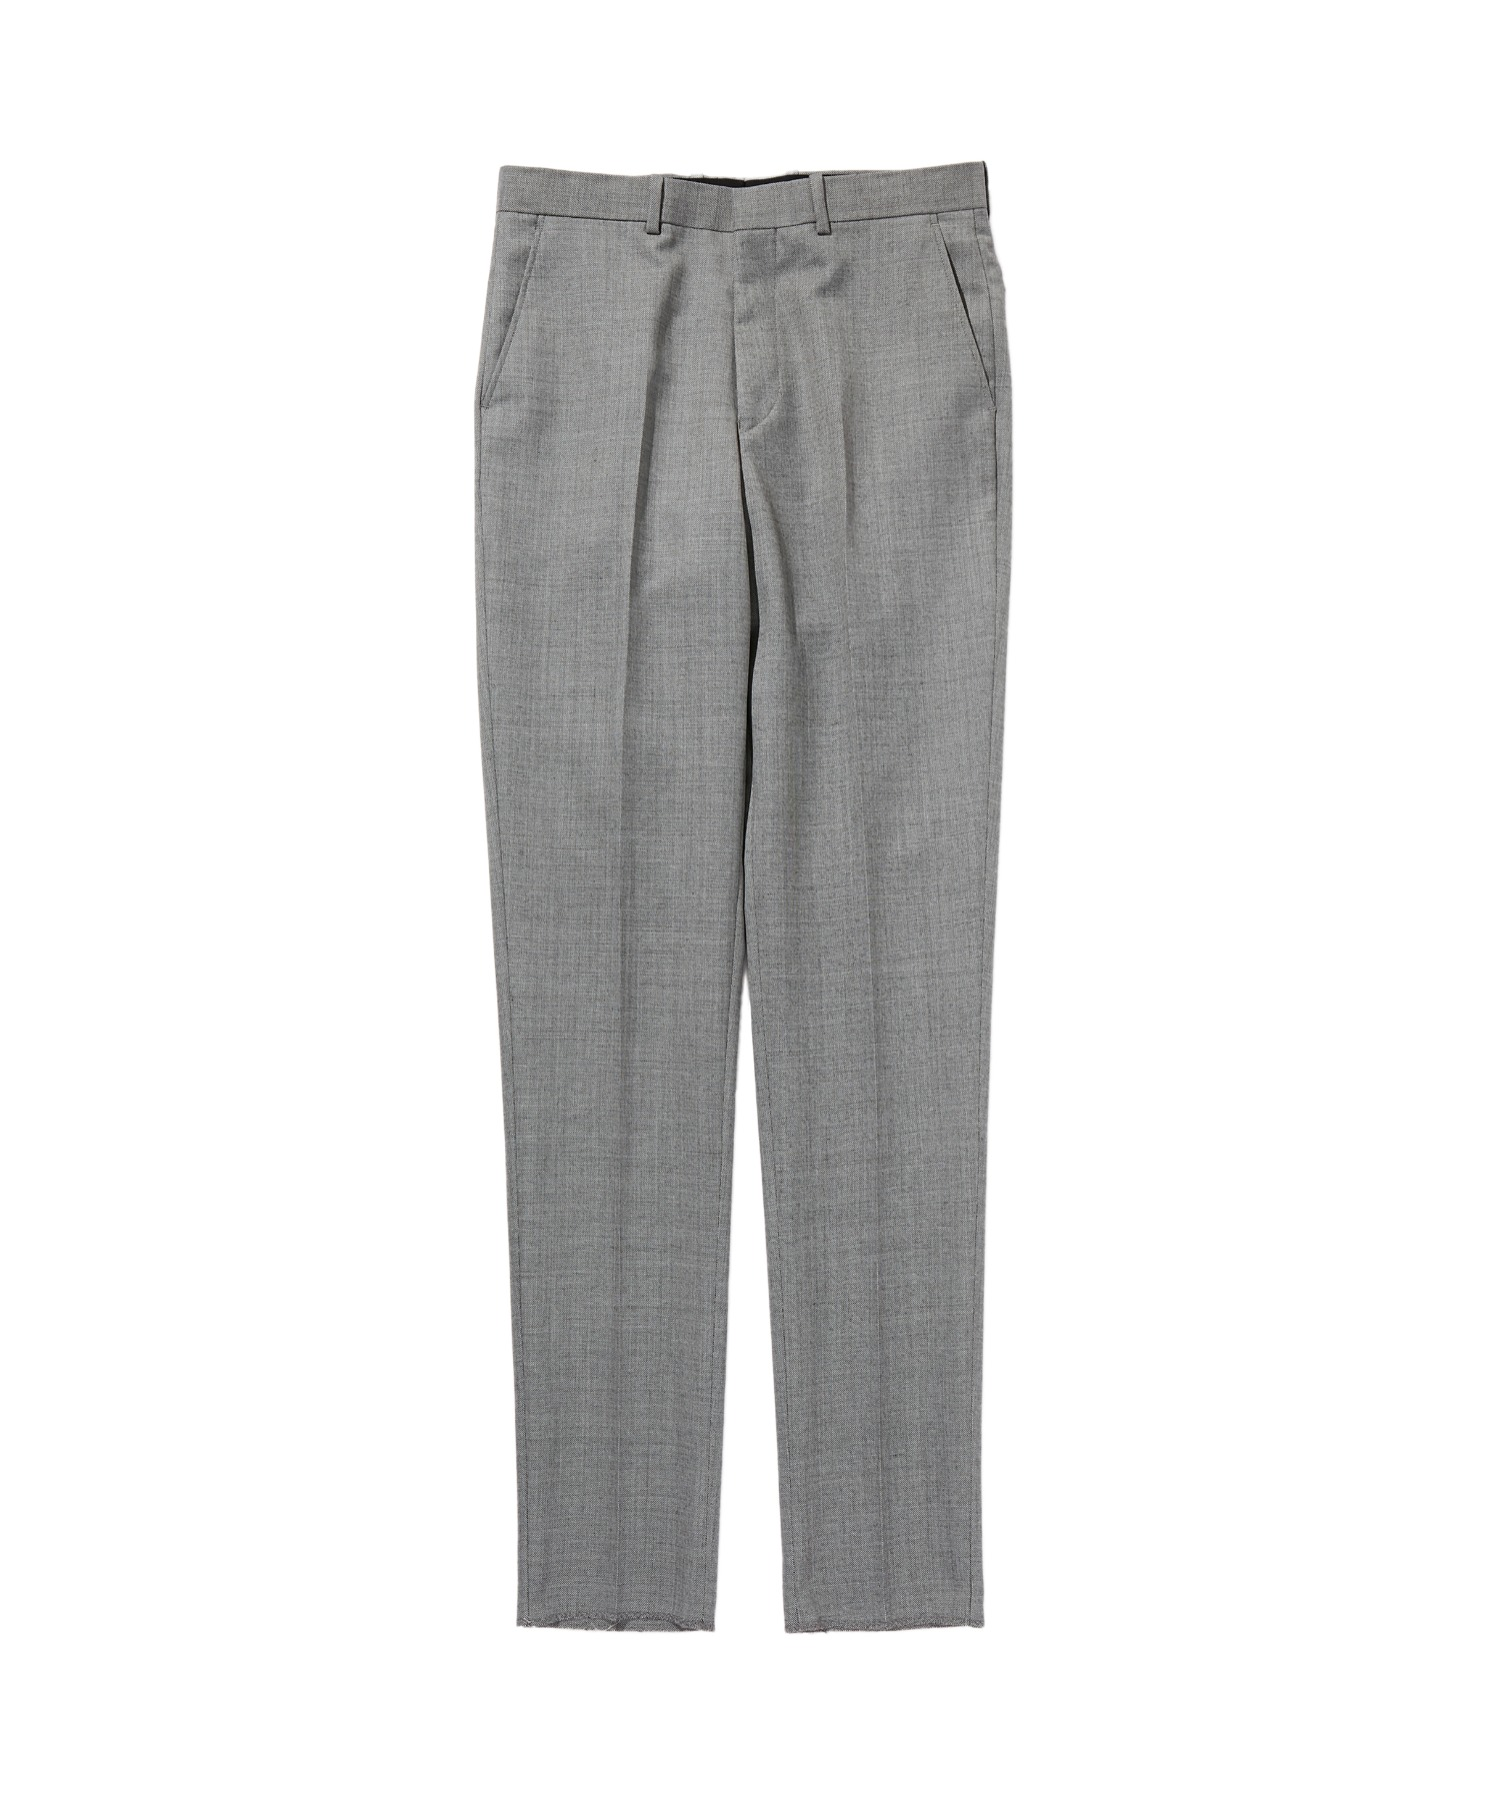 SPRING2020 SLIM TAPERED SLACKS